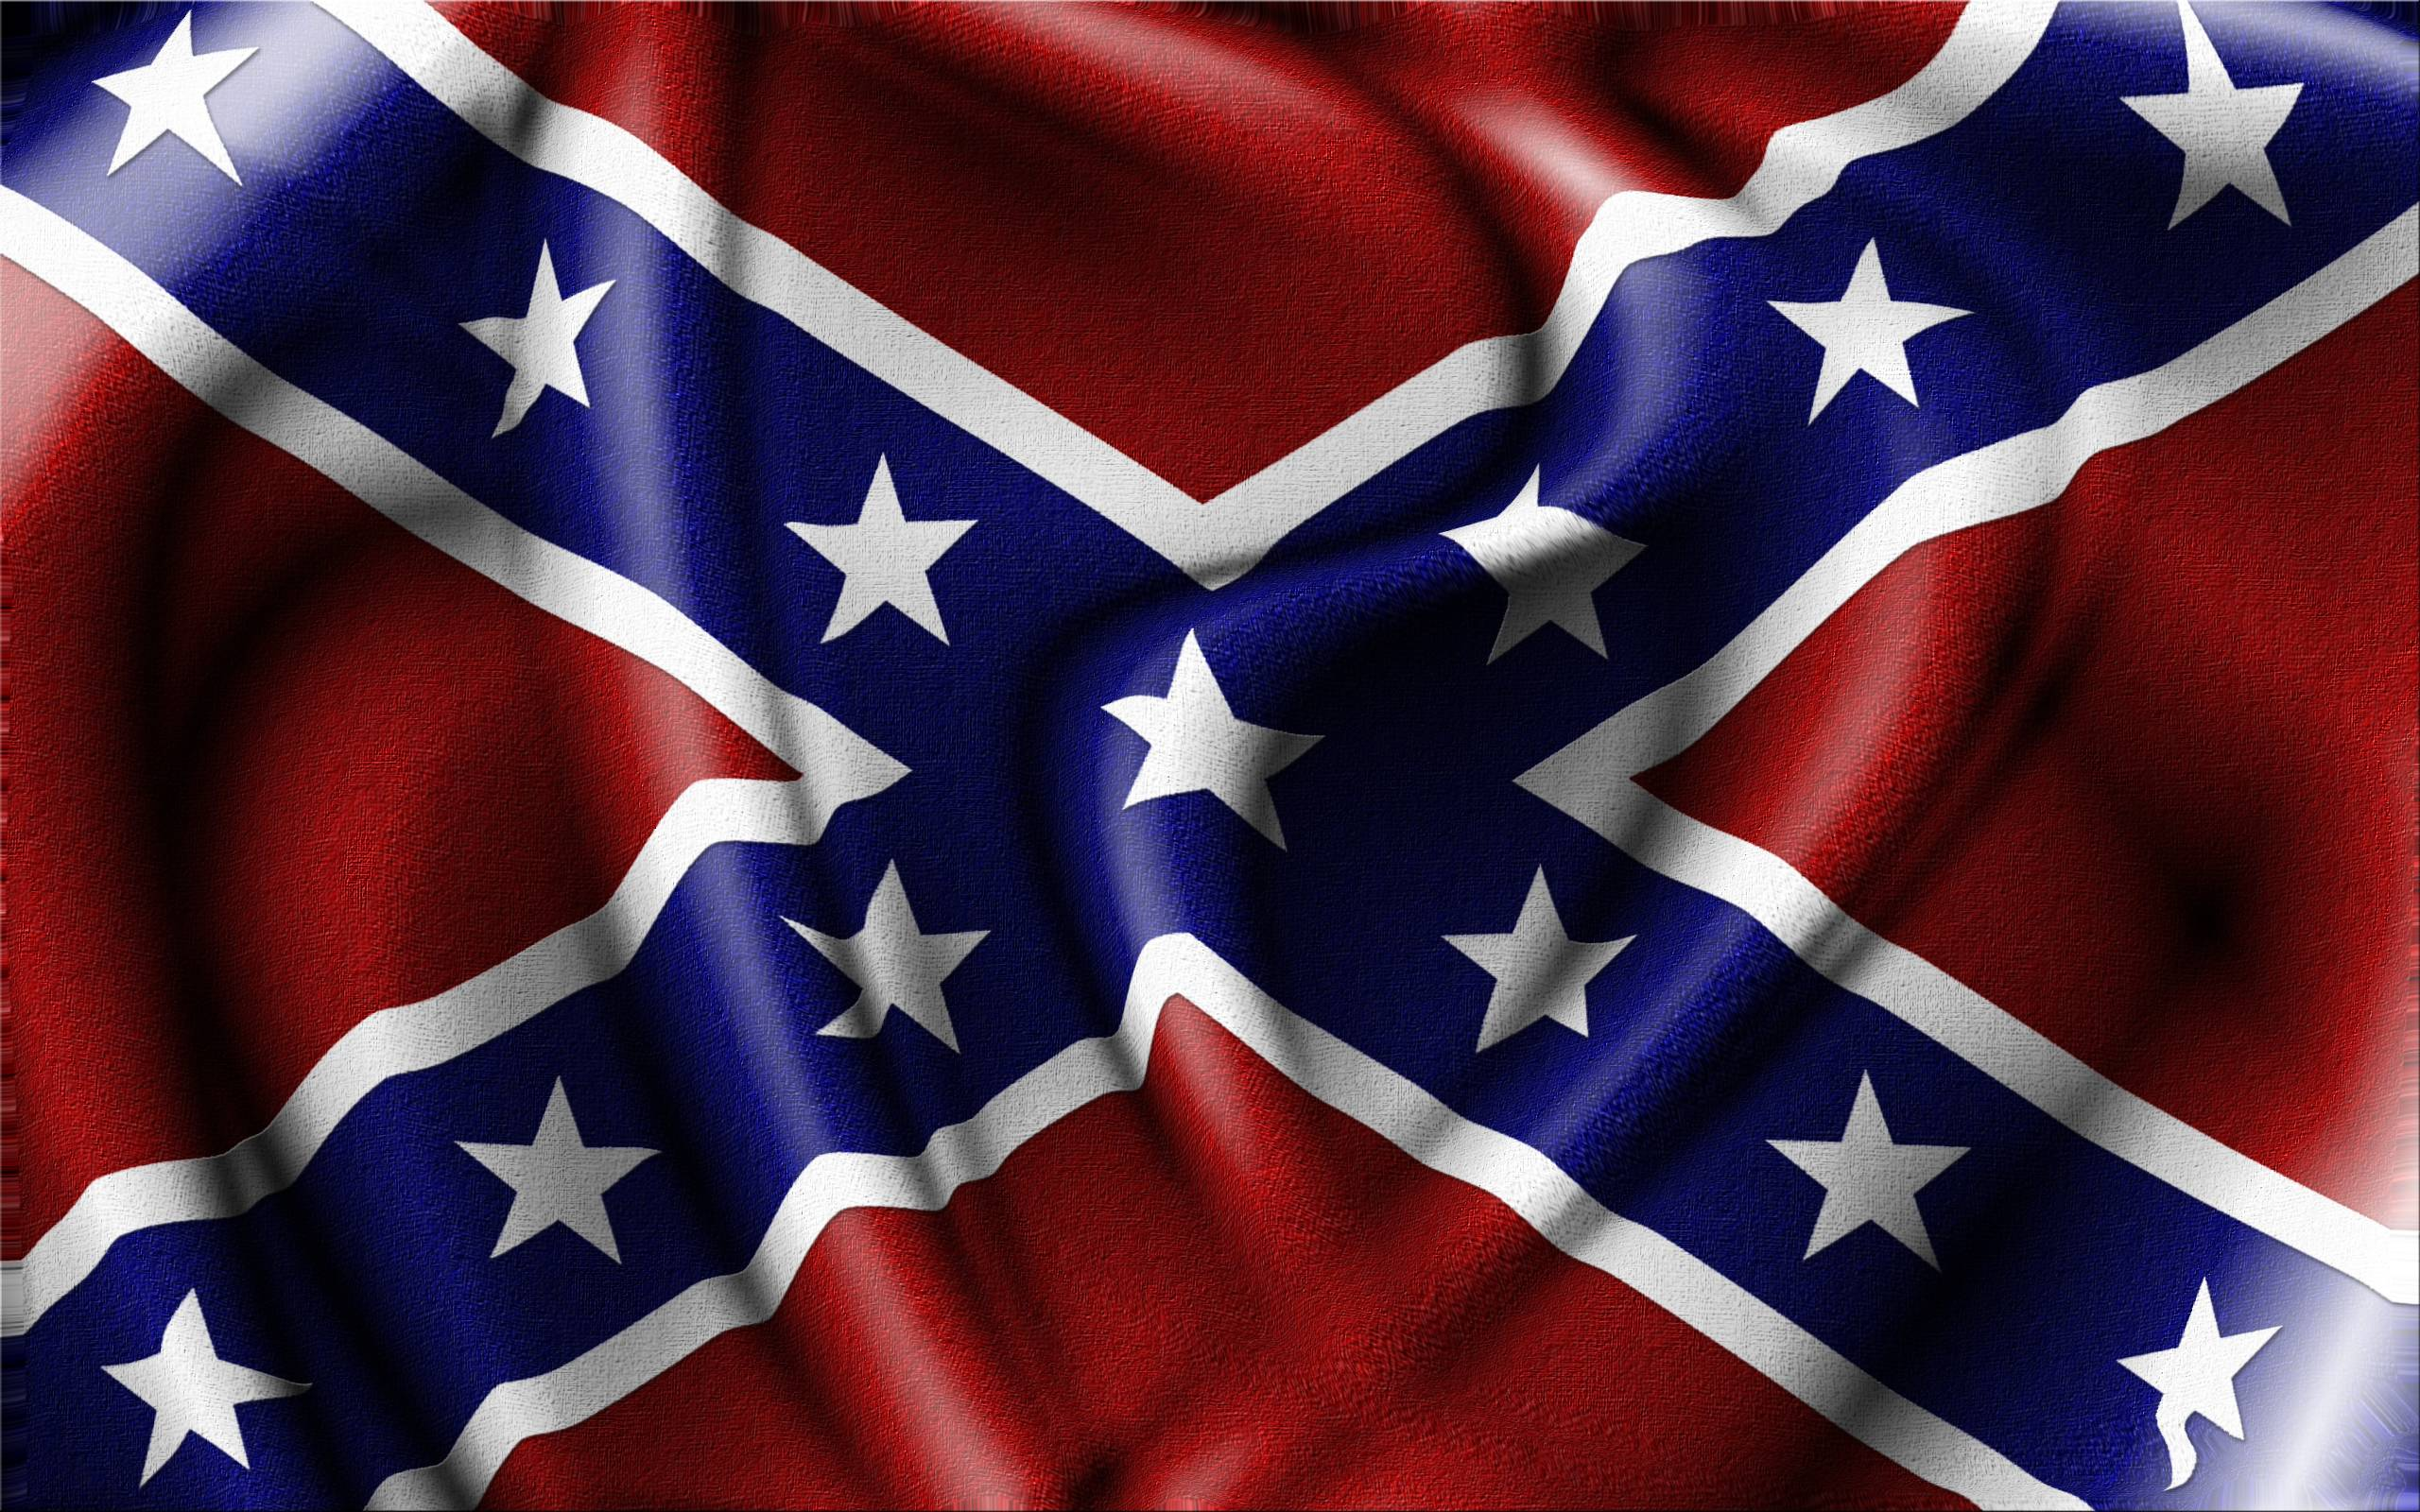 Confederate Flag Wallpaper | Large HD Wallpaper Database